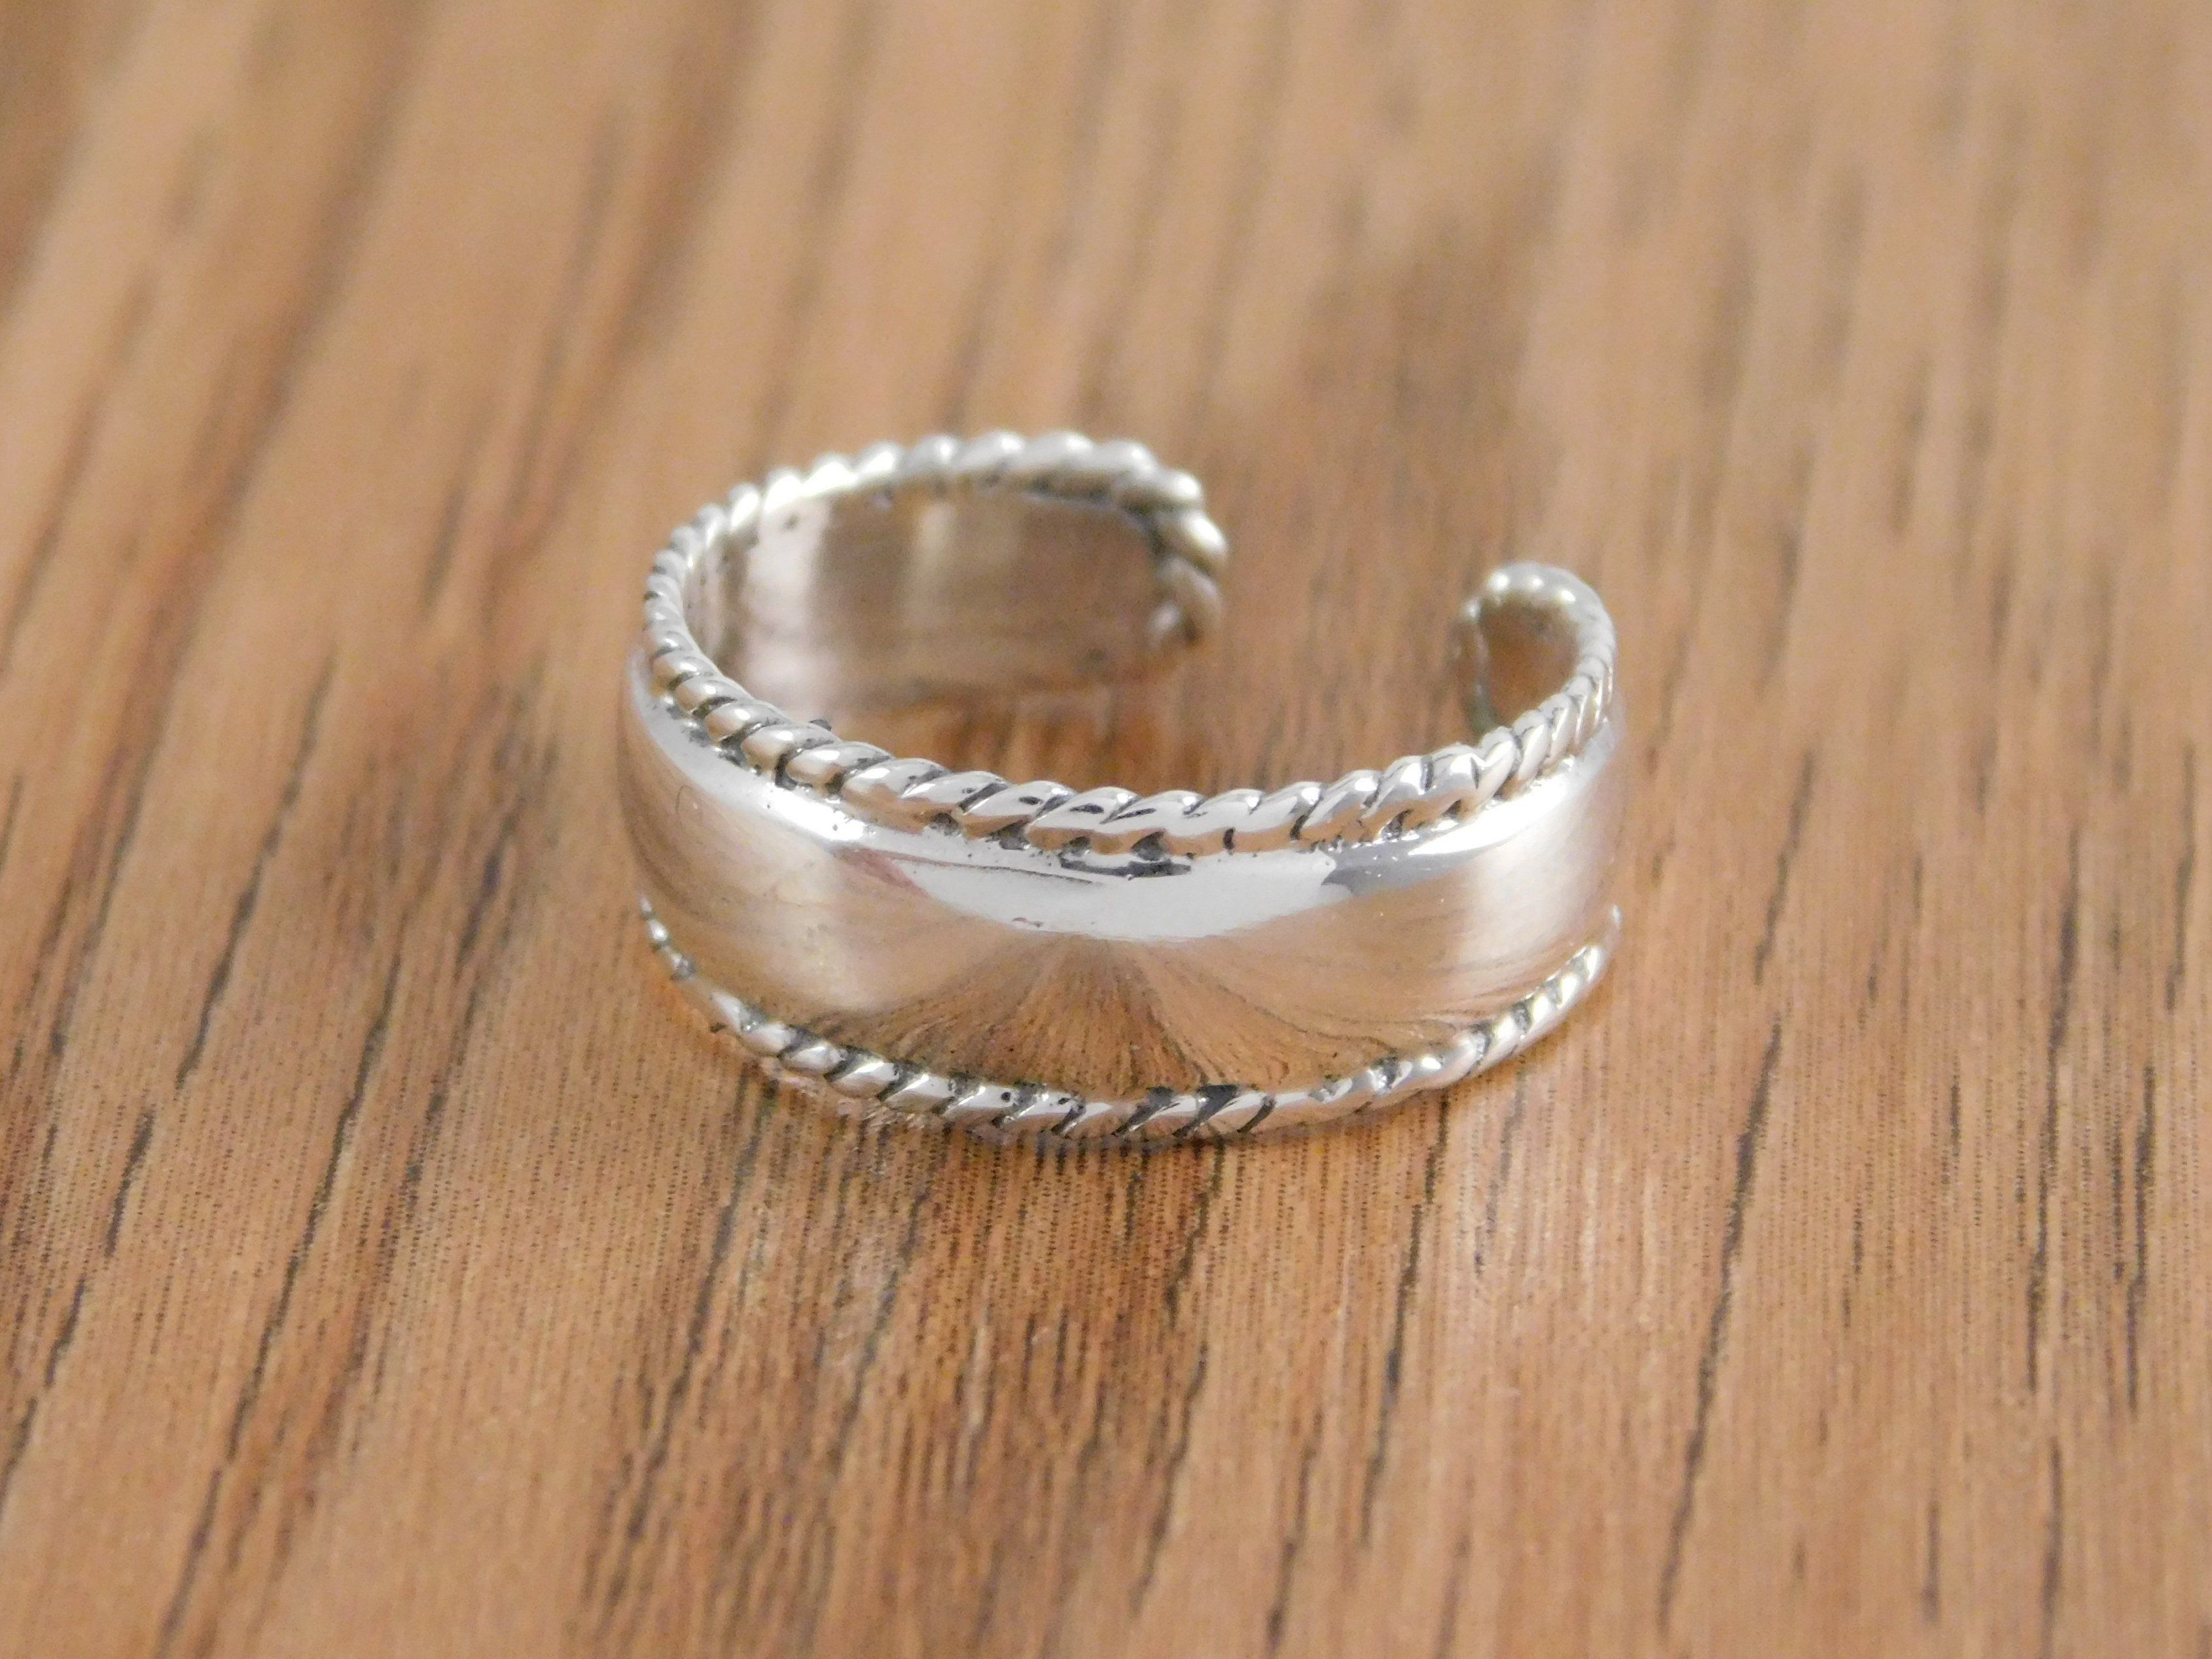 Celtic Toe Ring Face Height 7 mm Solid Sterling Silver 925 Adjustable Jewelry